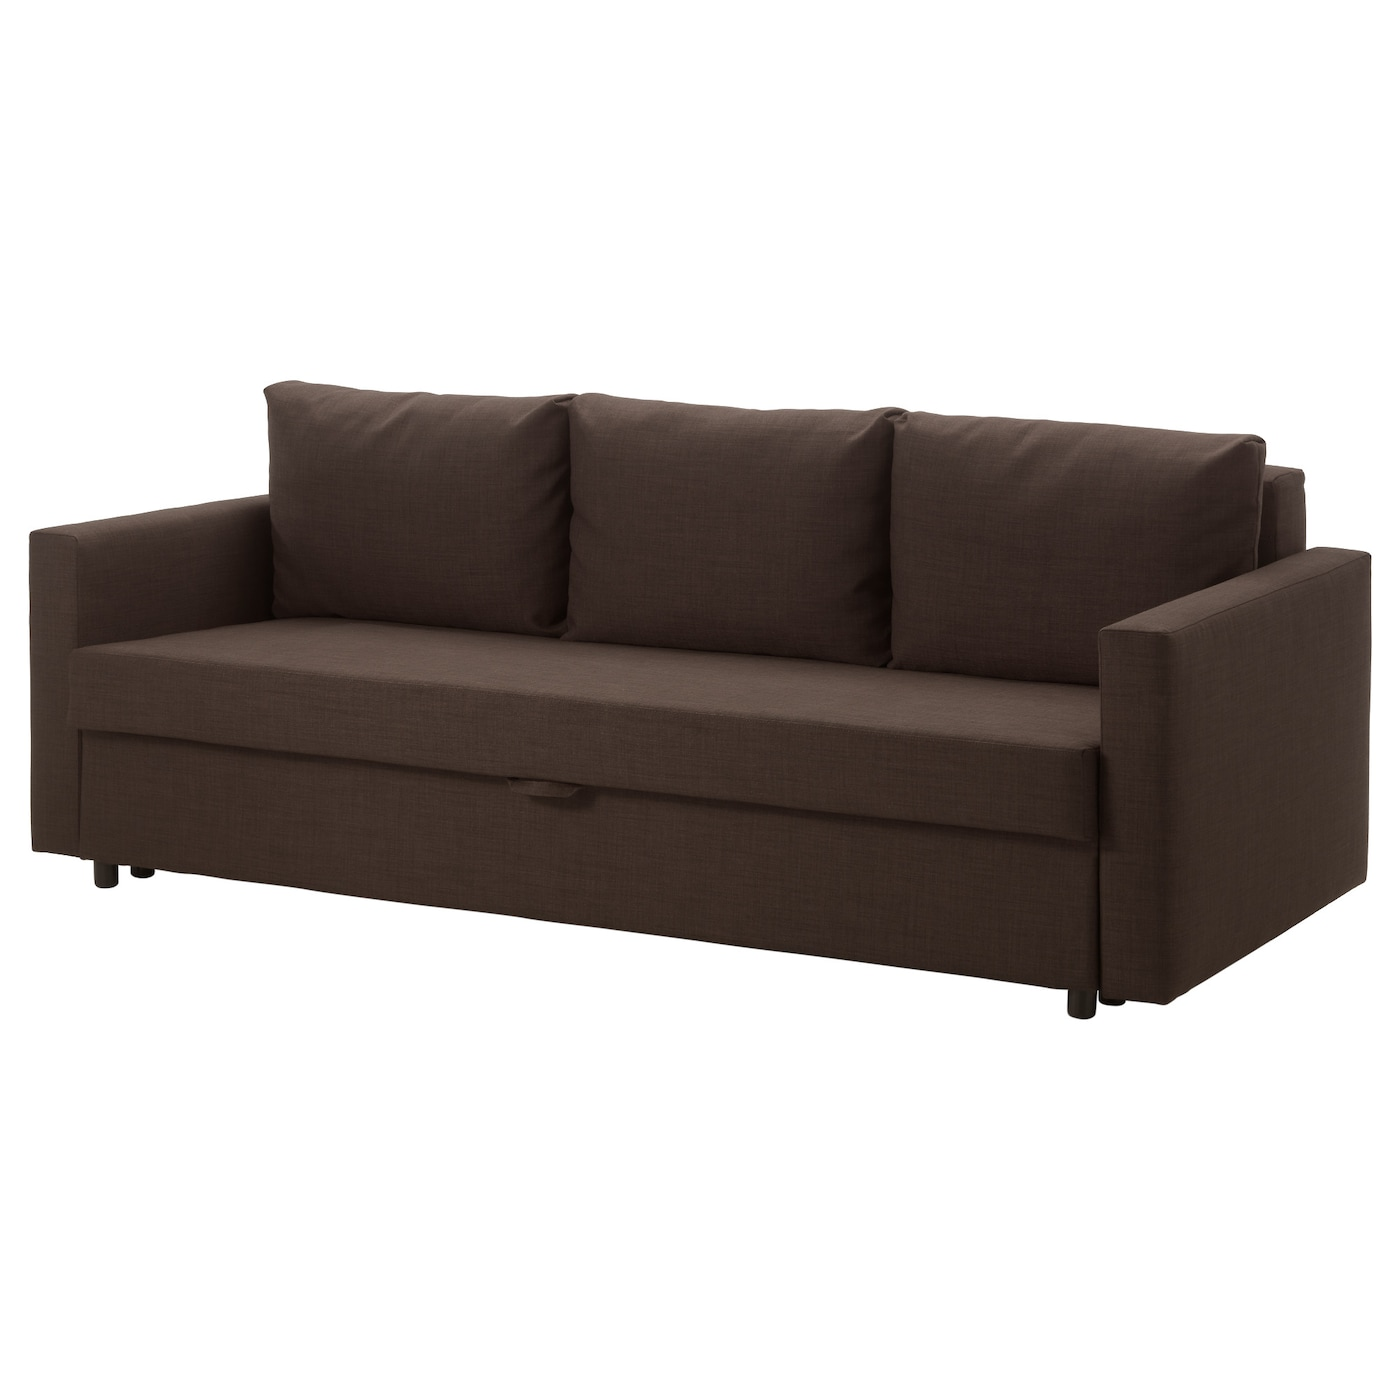 friheten three seat sofa bed skiftebo brown ikea. Black Bedroom Furniture Sets. Home Design Ideas